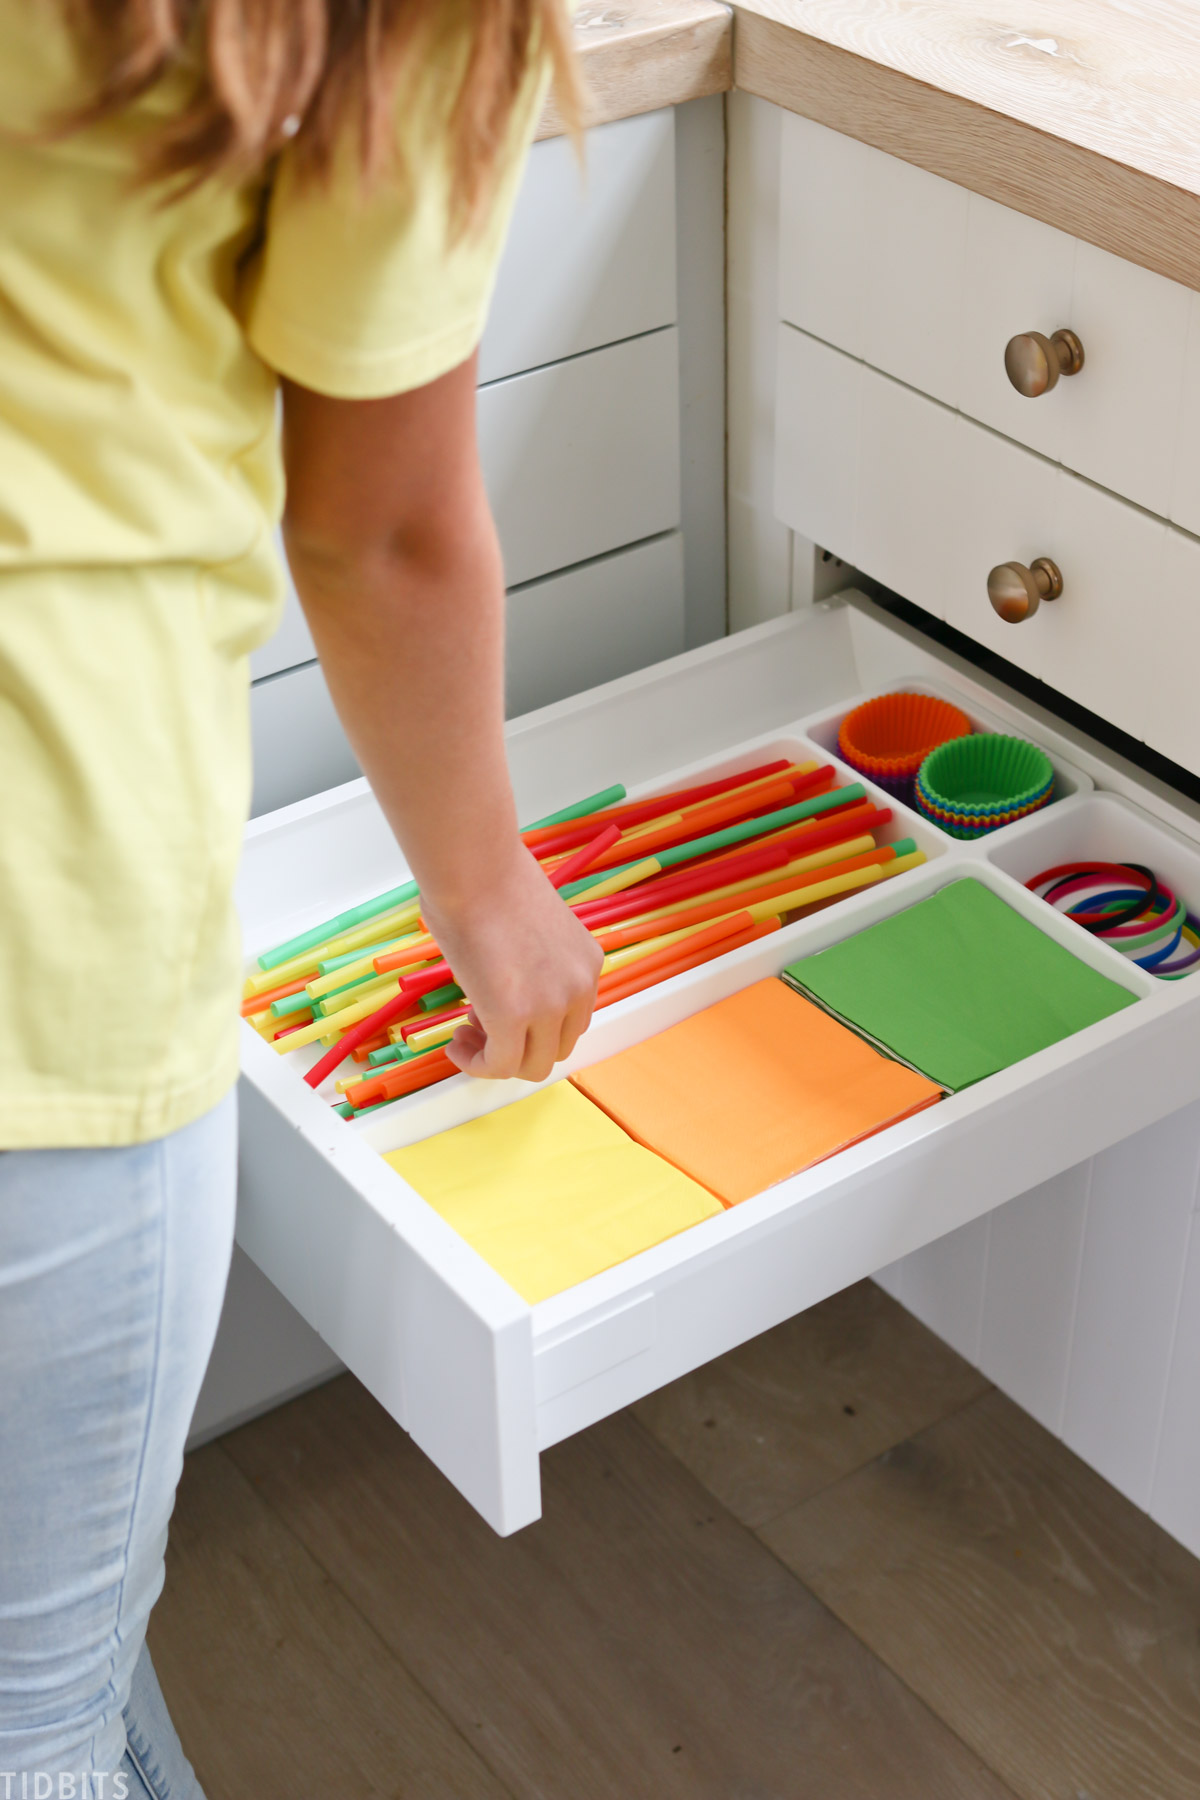 hand is reaching into drawer containing straws, napkins, cupcake liners, and silicone wristbands